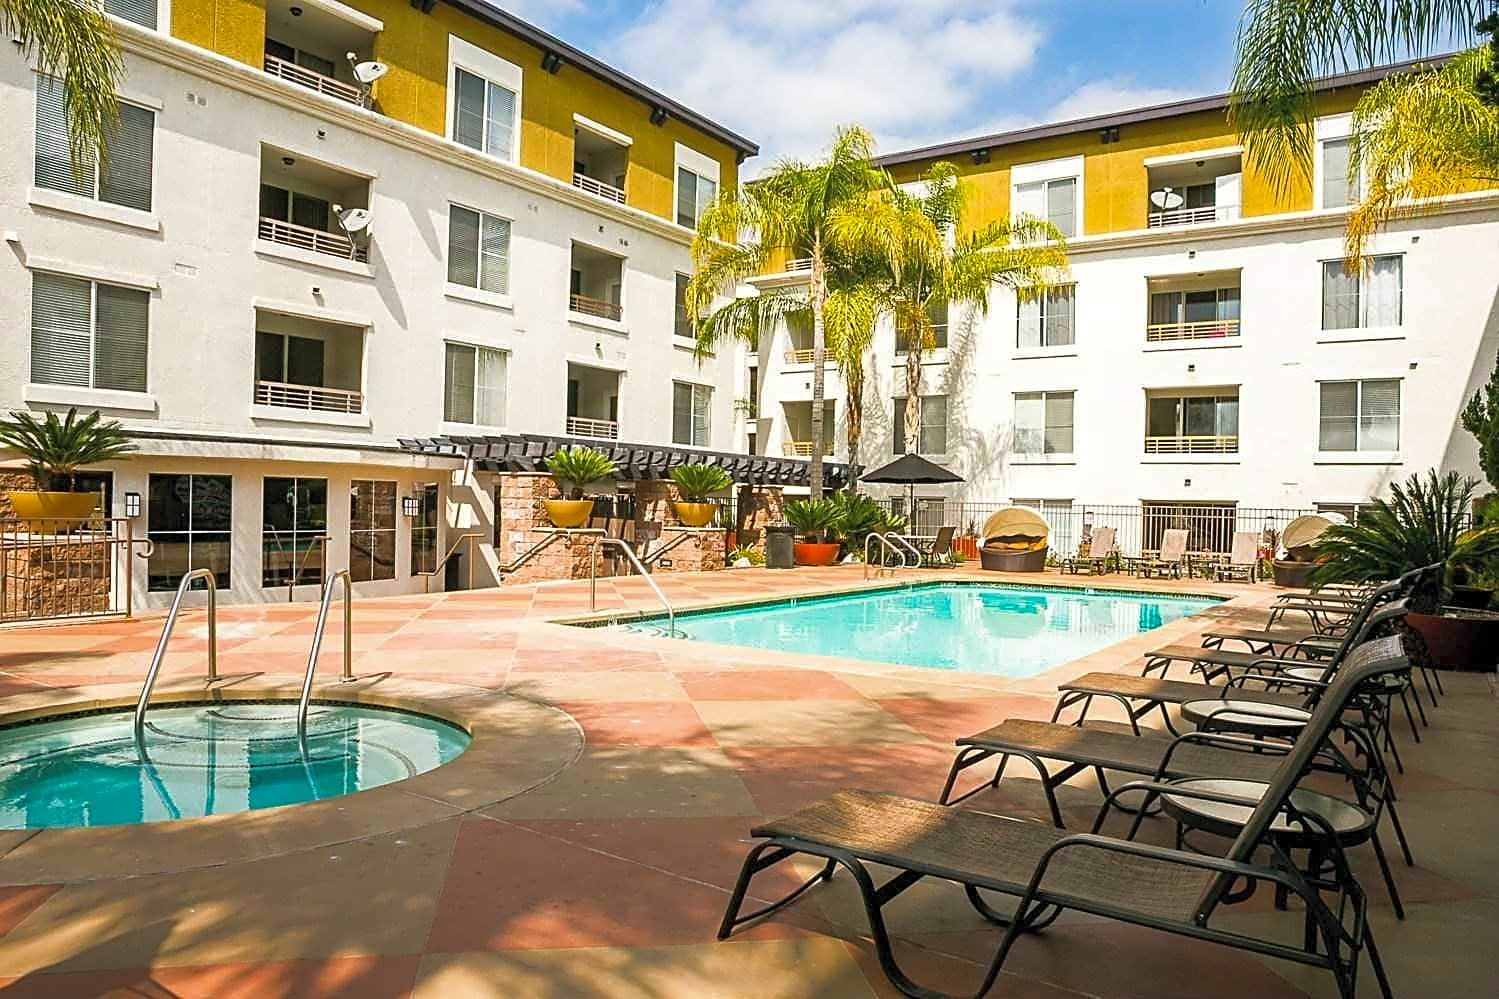 Photo: Woodland Hills Apartment for Rent - $1702.00 / month; 1 Bd & 1 Ba